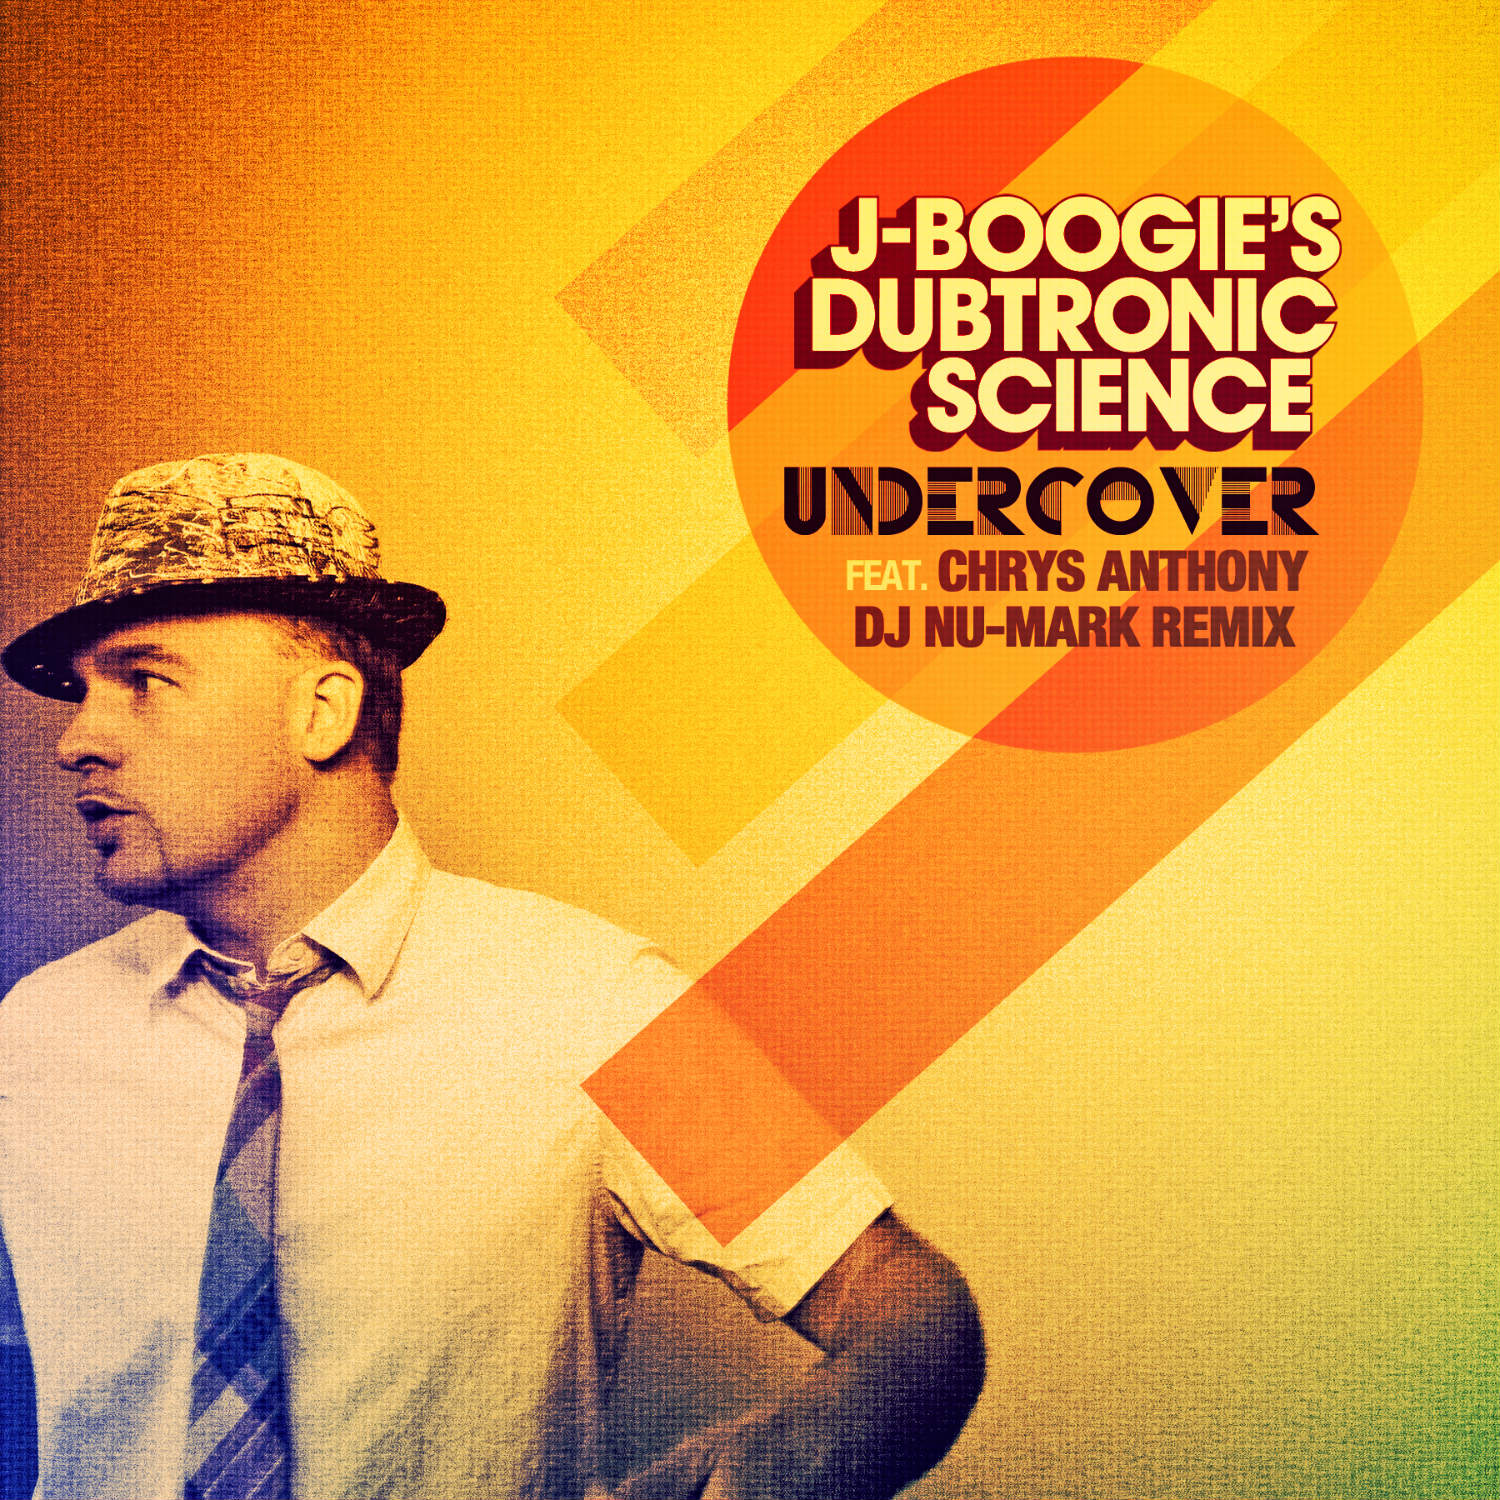 J Boogie's Dubtronic Science - Undercover (feat. Chrys Anthony)